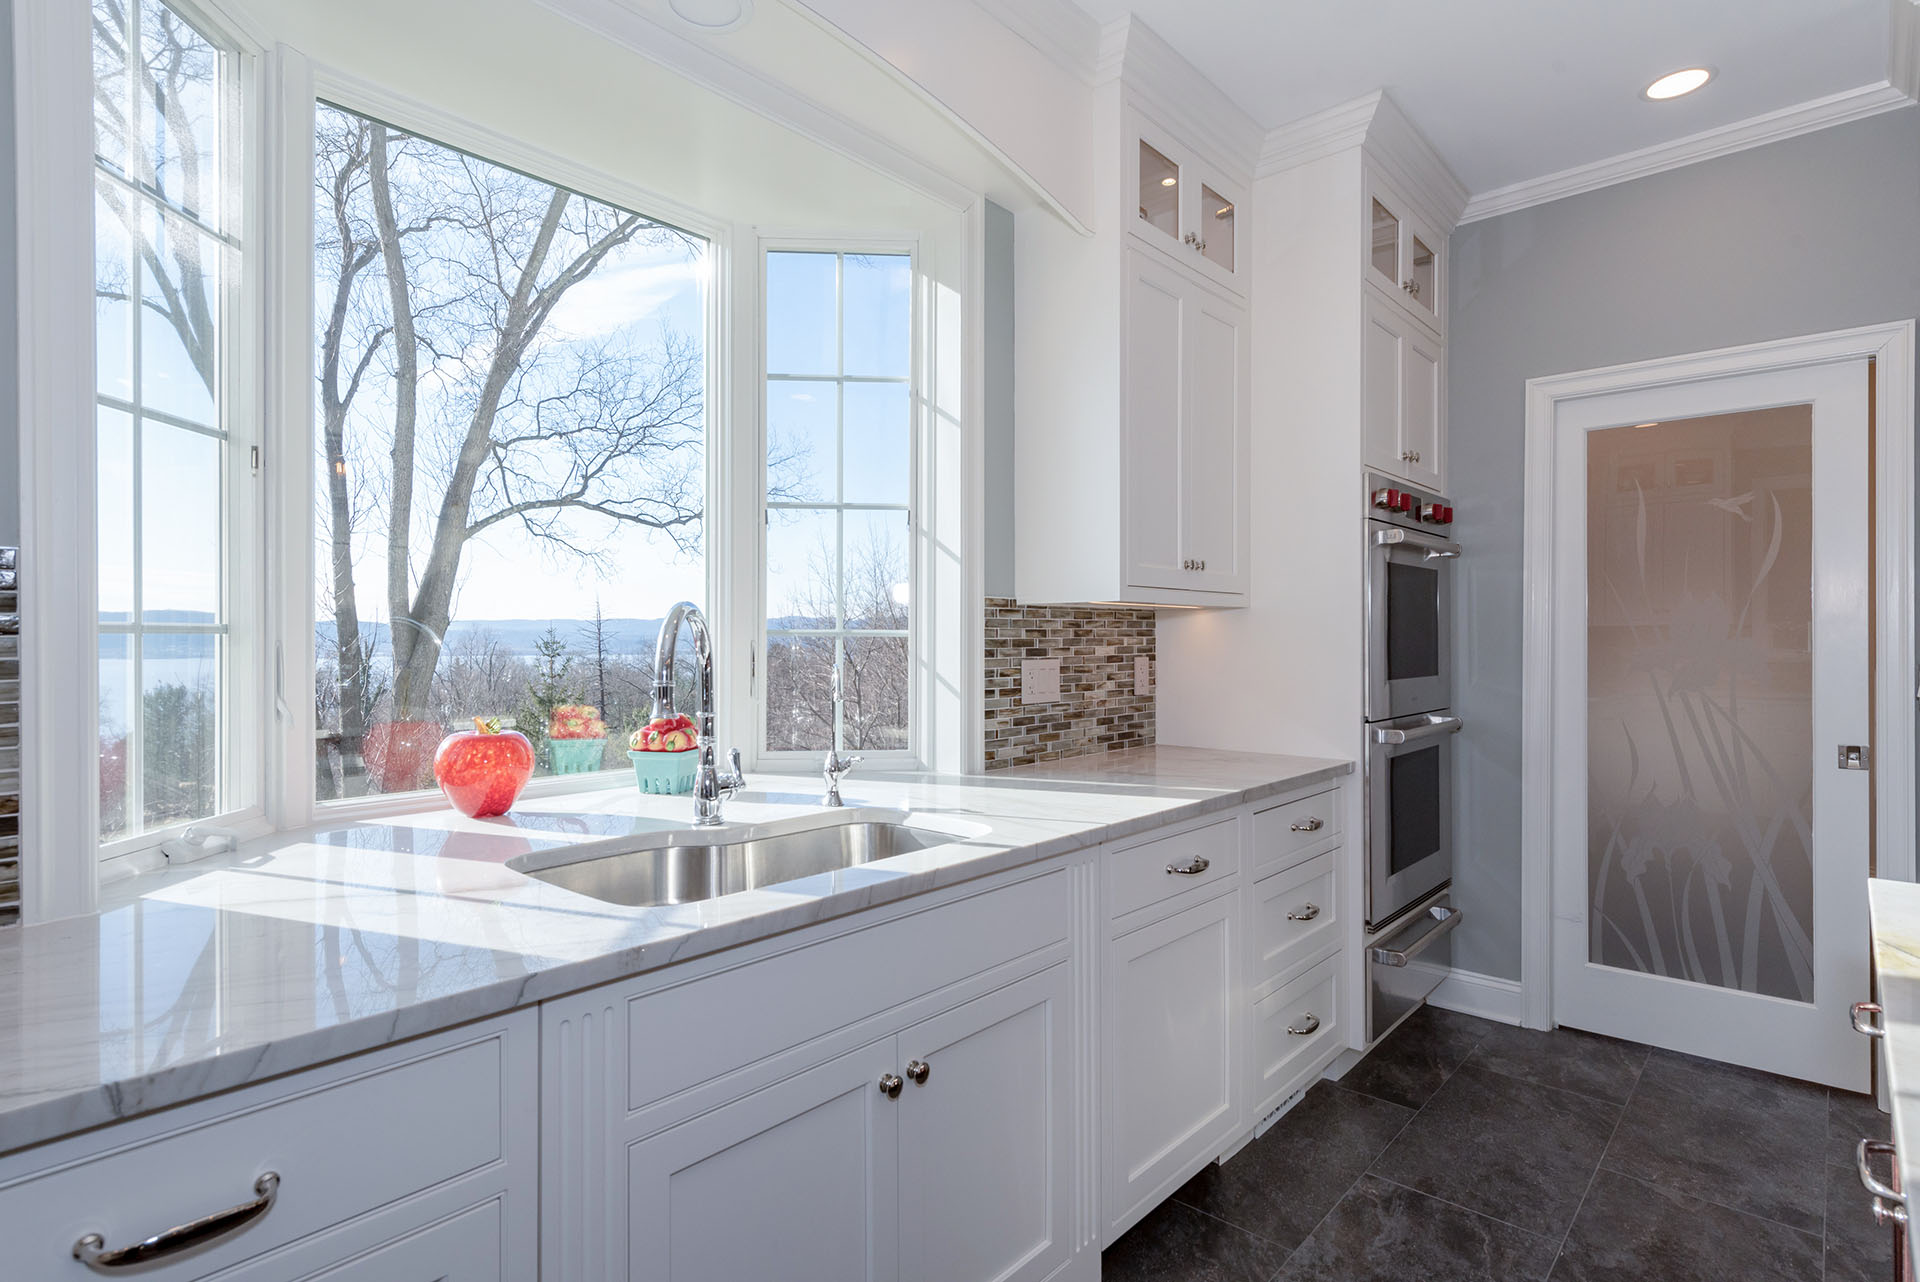 kitchen designed by Joan Bigg indoor and outdoor kitchen design fairfield county ct